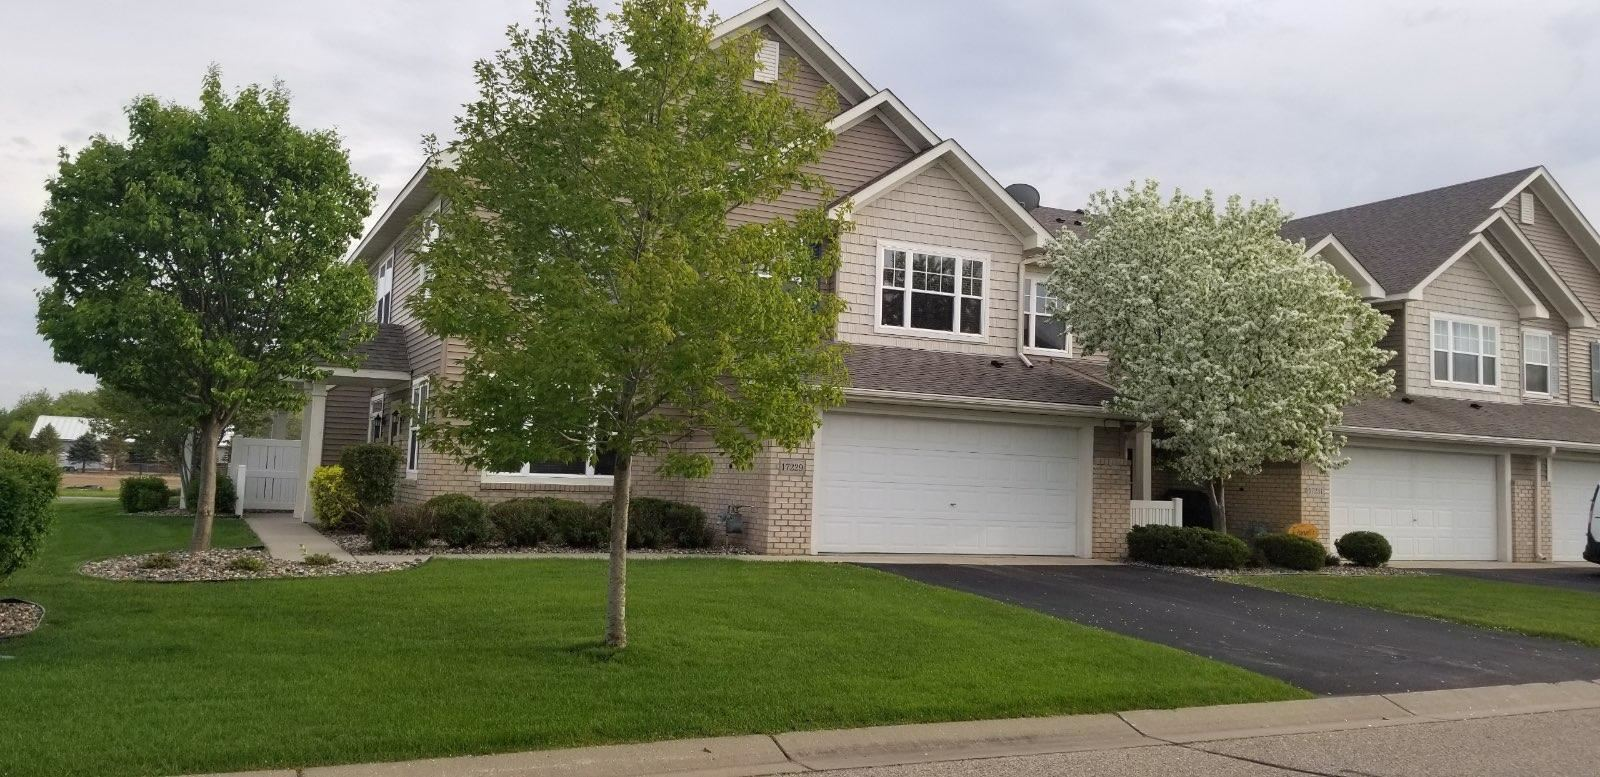 Photo of 17229 Encina Path #2604, Lakeville, MN 55024 (MLS # 5739291)